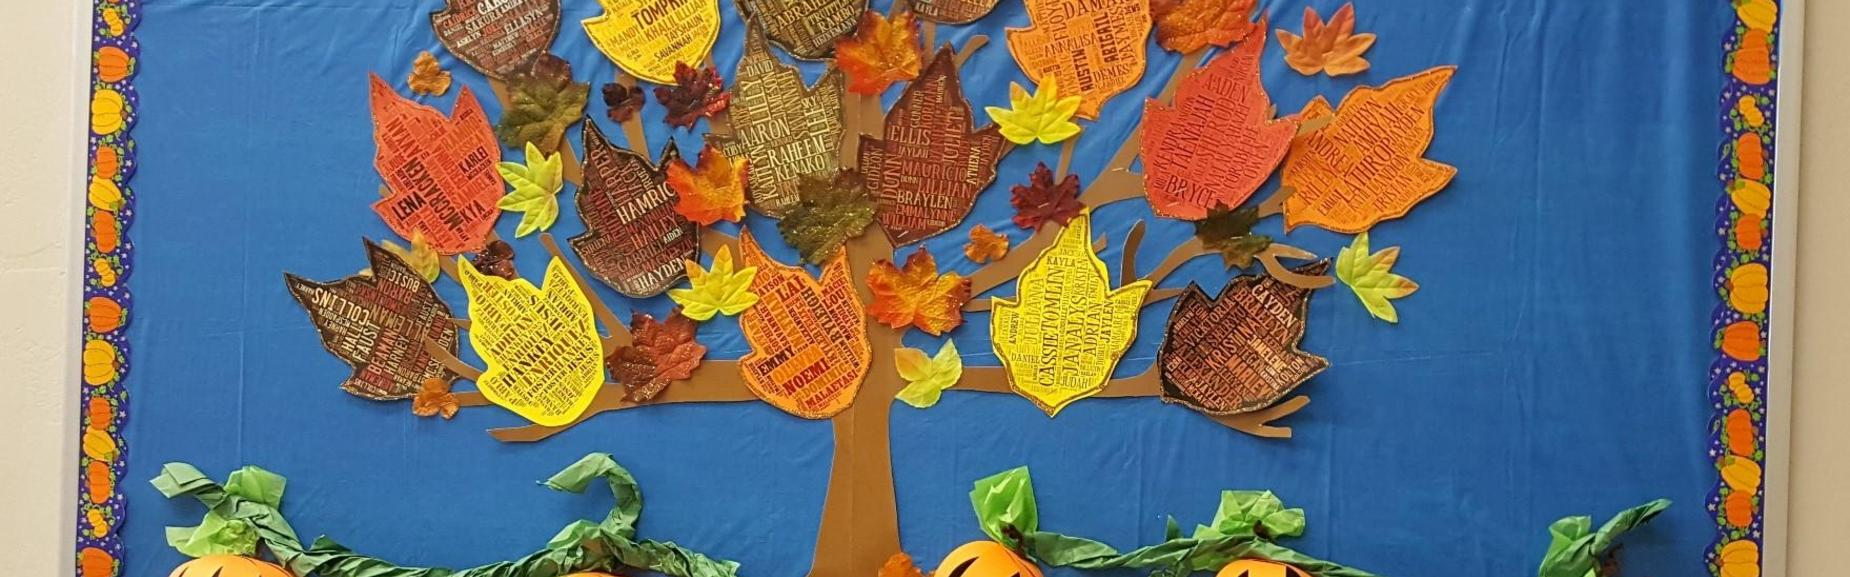 bulletin board with leaves